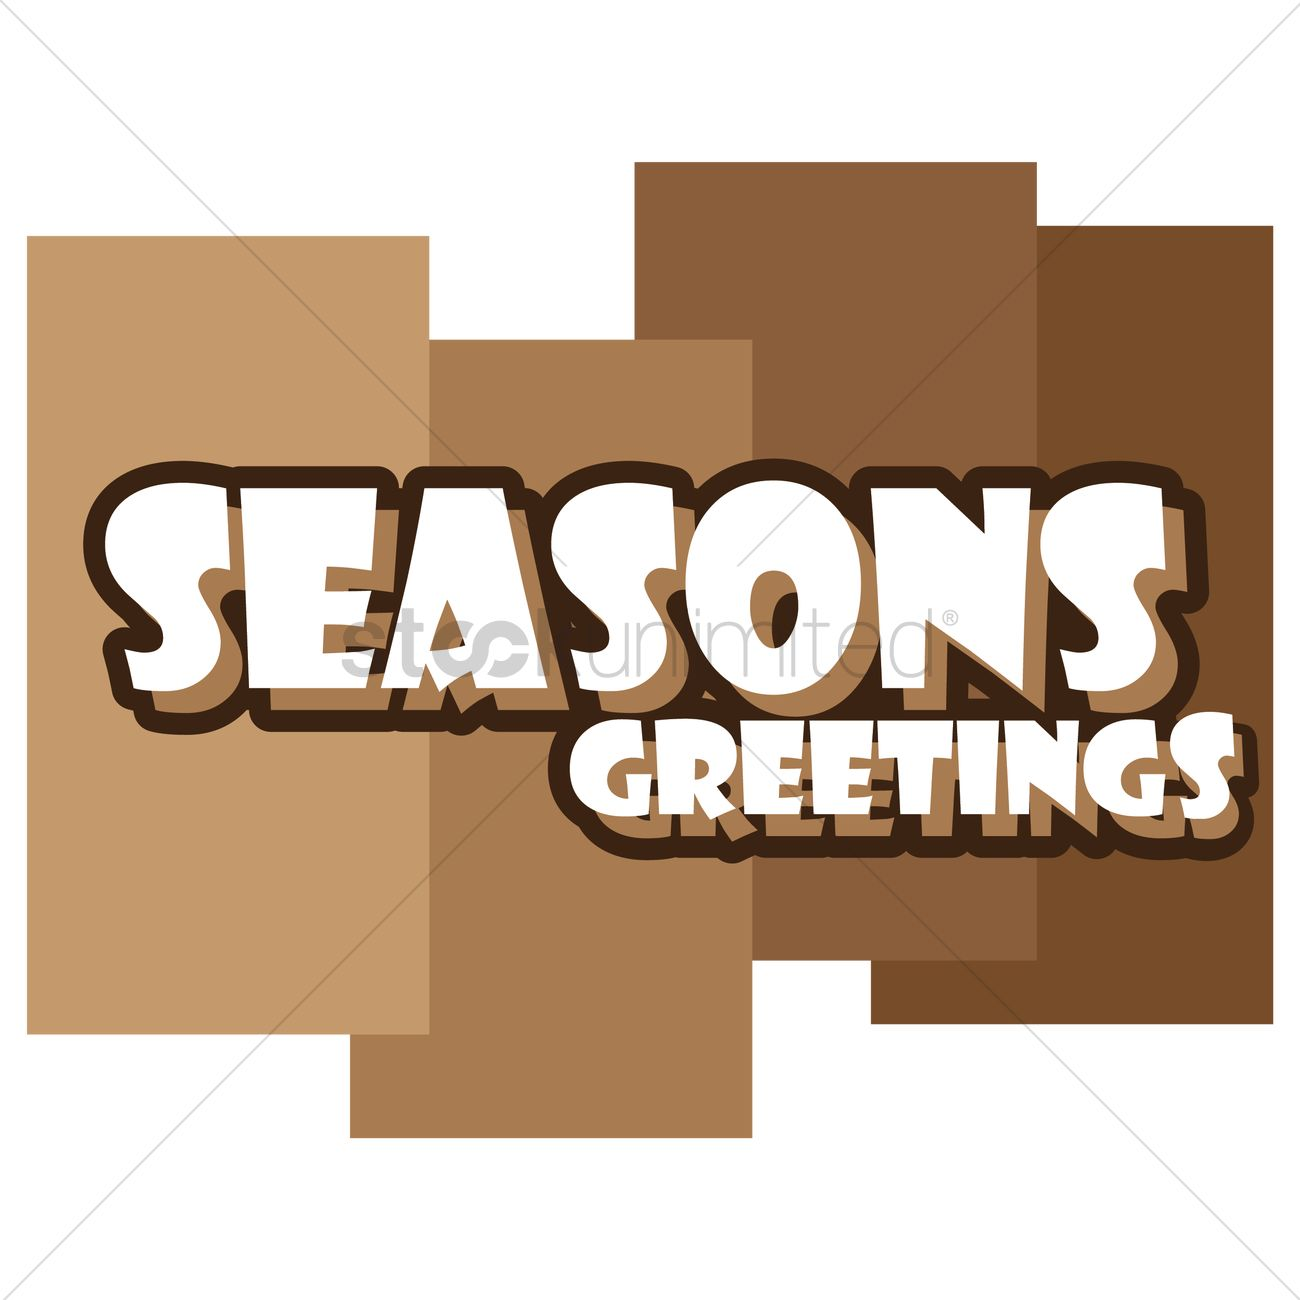 Seasons greeting label vector image 1827347 stockunlimited seasons greeting label vector graphic kristyandbryce Images